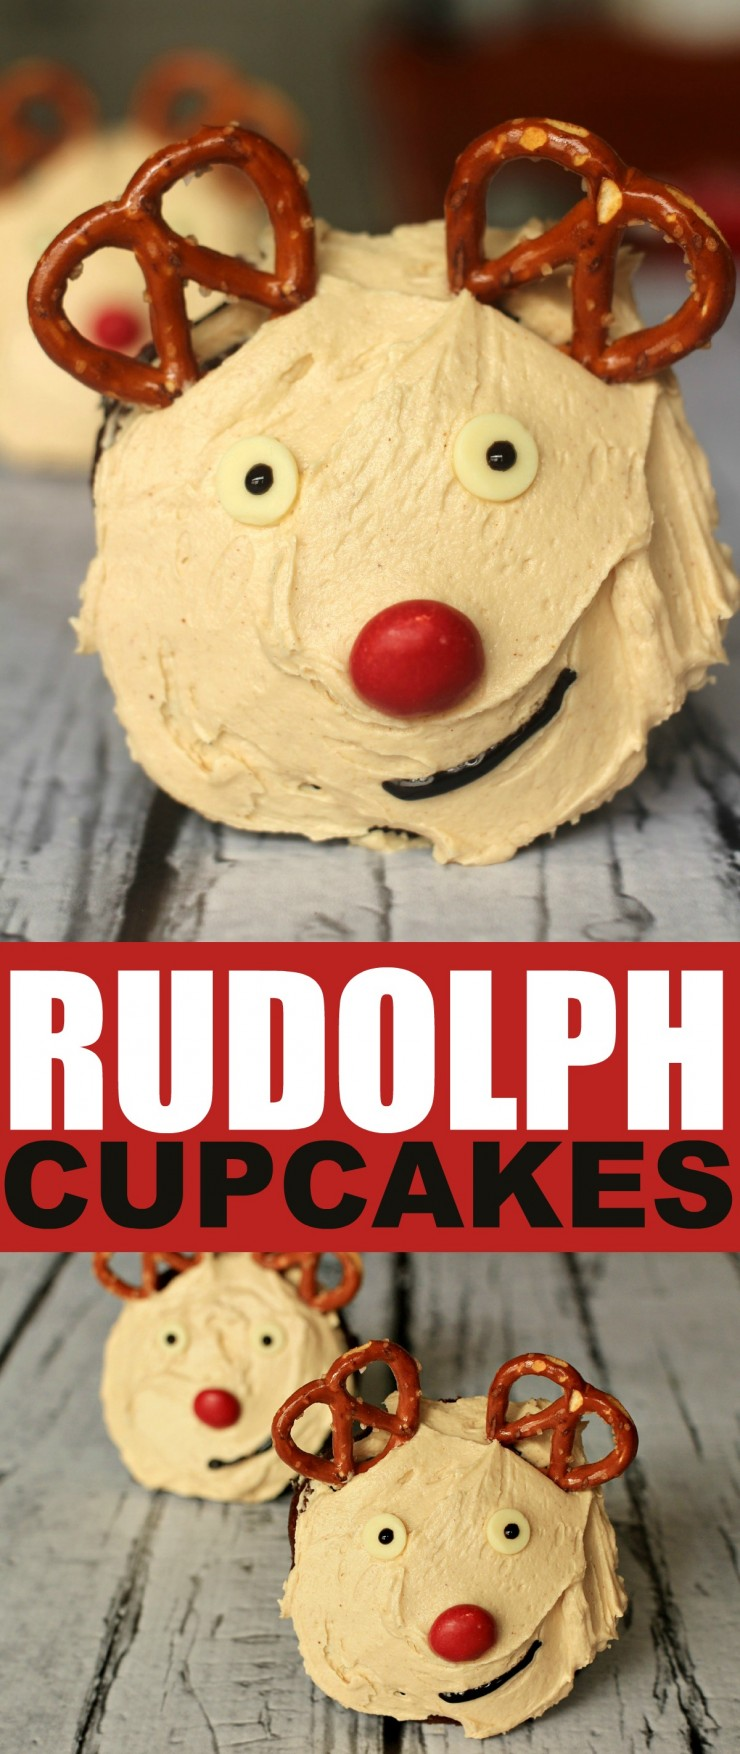 These Rudolph the Red Nosed Reindeer Cupcakes aren't just cute, they are made from scratch chocolate and peanut butter treats.  Absolute perfection!